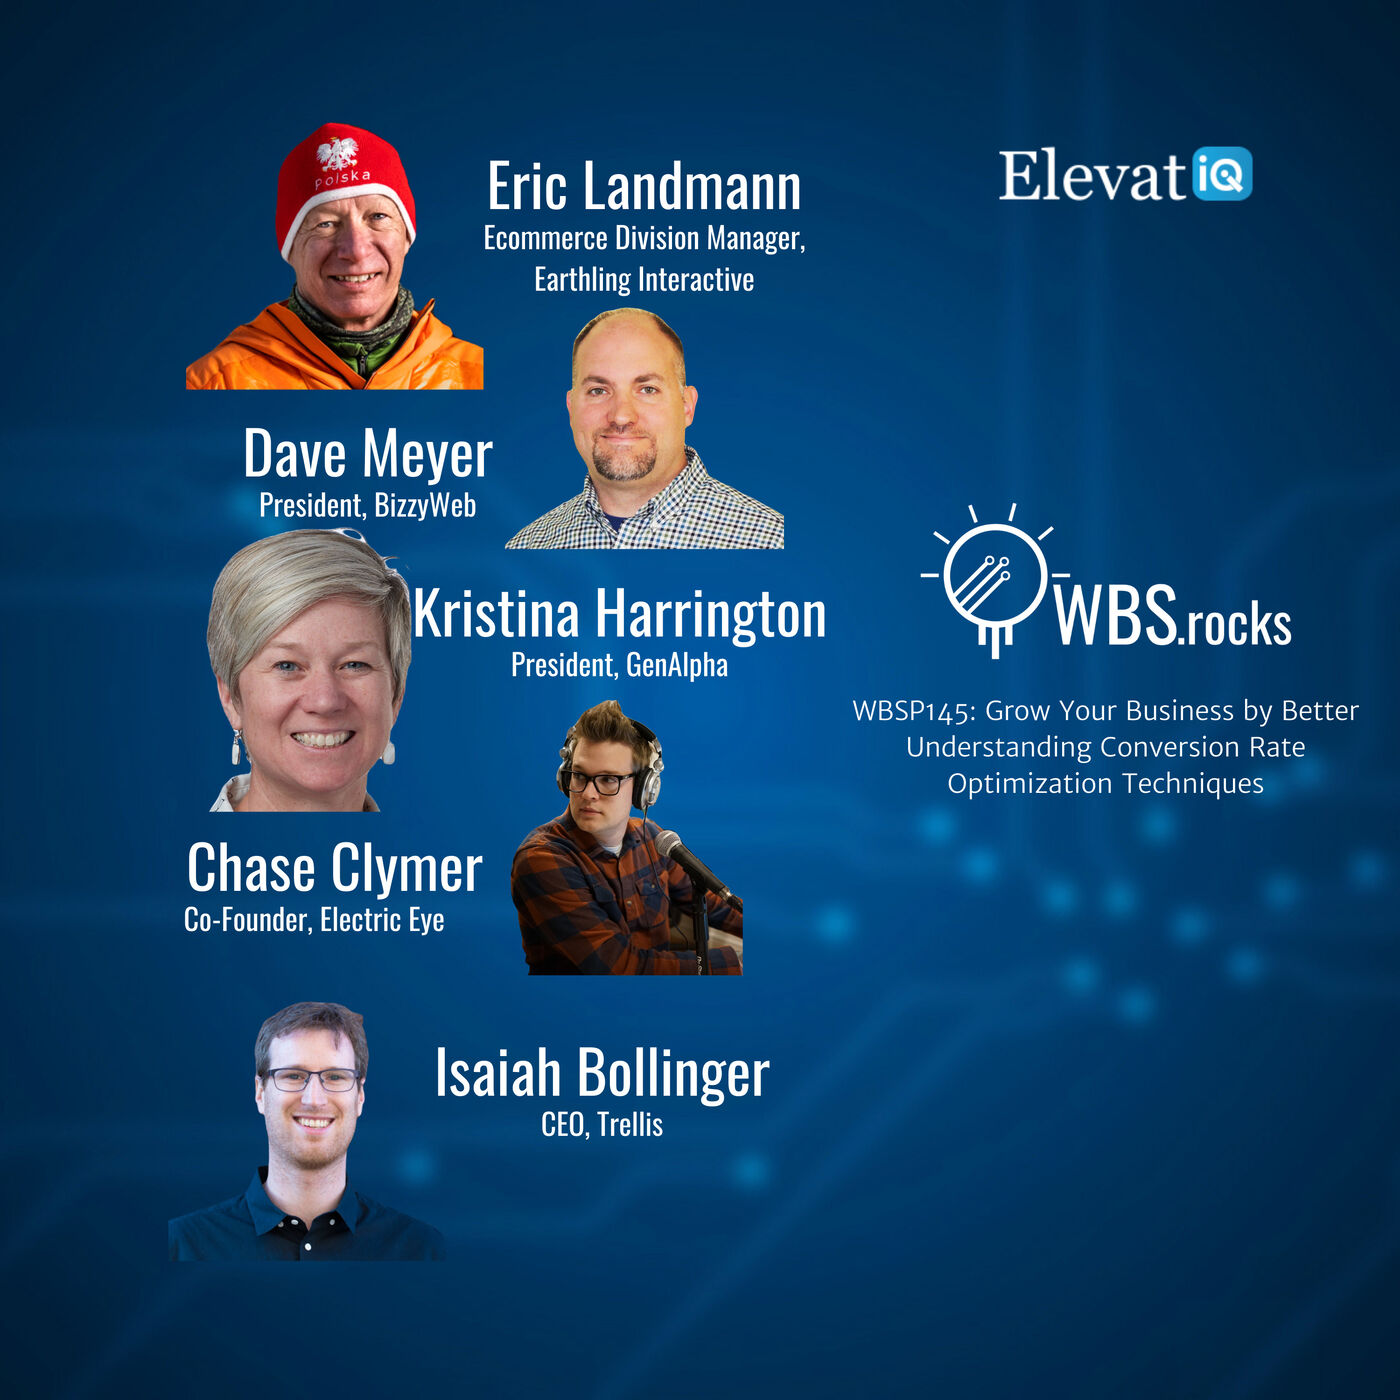 WBSP145: Grow Your Business by Better Understanding Conversion Rate Optimization Techniques, a Live Interview w/ a Panel of Experts